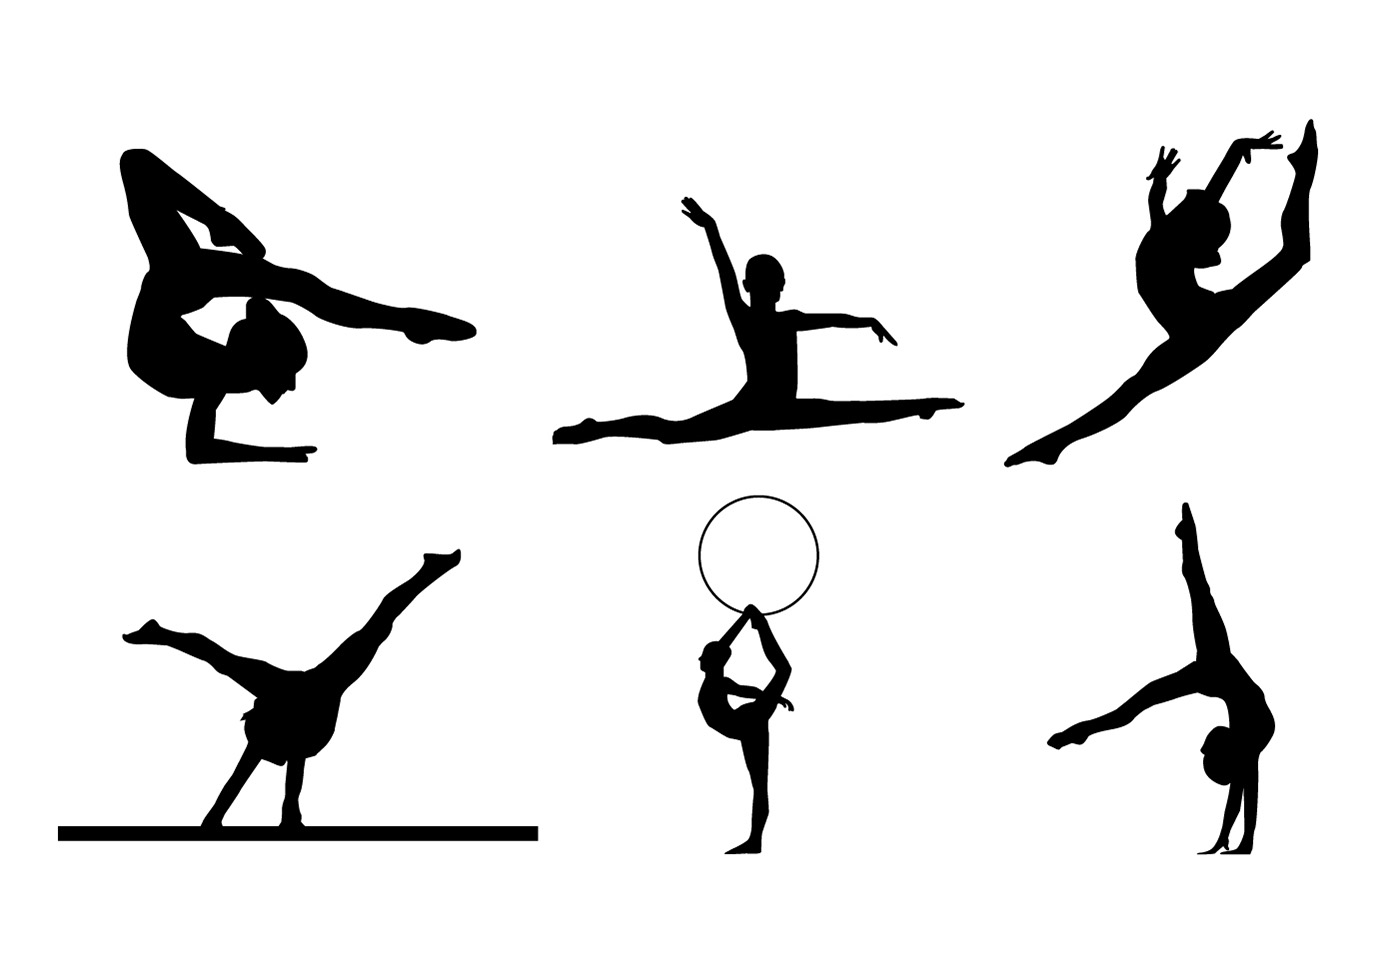 Gymnastic Silhouette Vectors - Download Free Vector Art, Stock Graphics  Images-8412